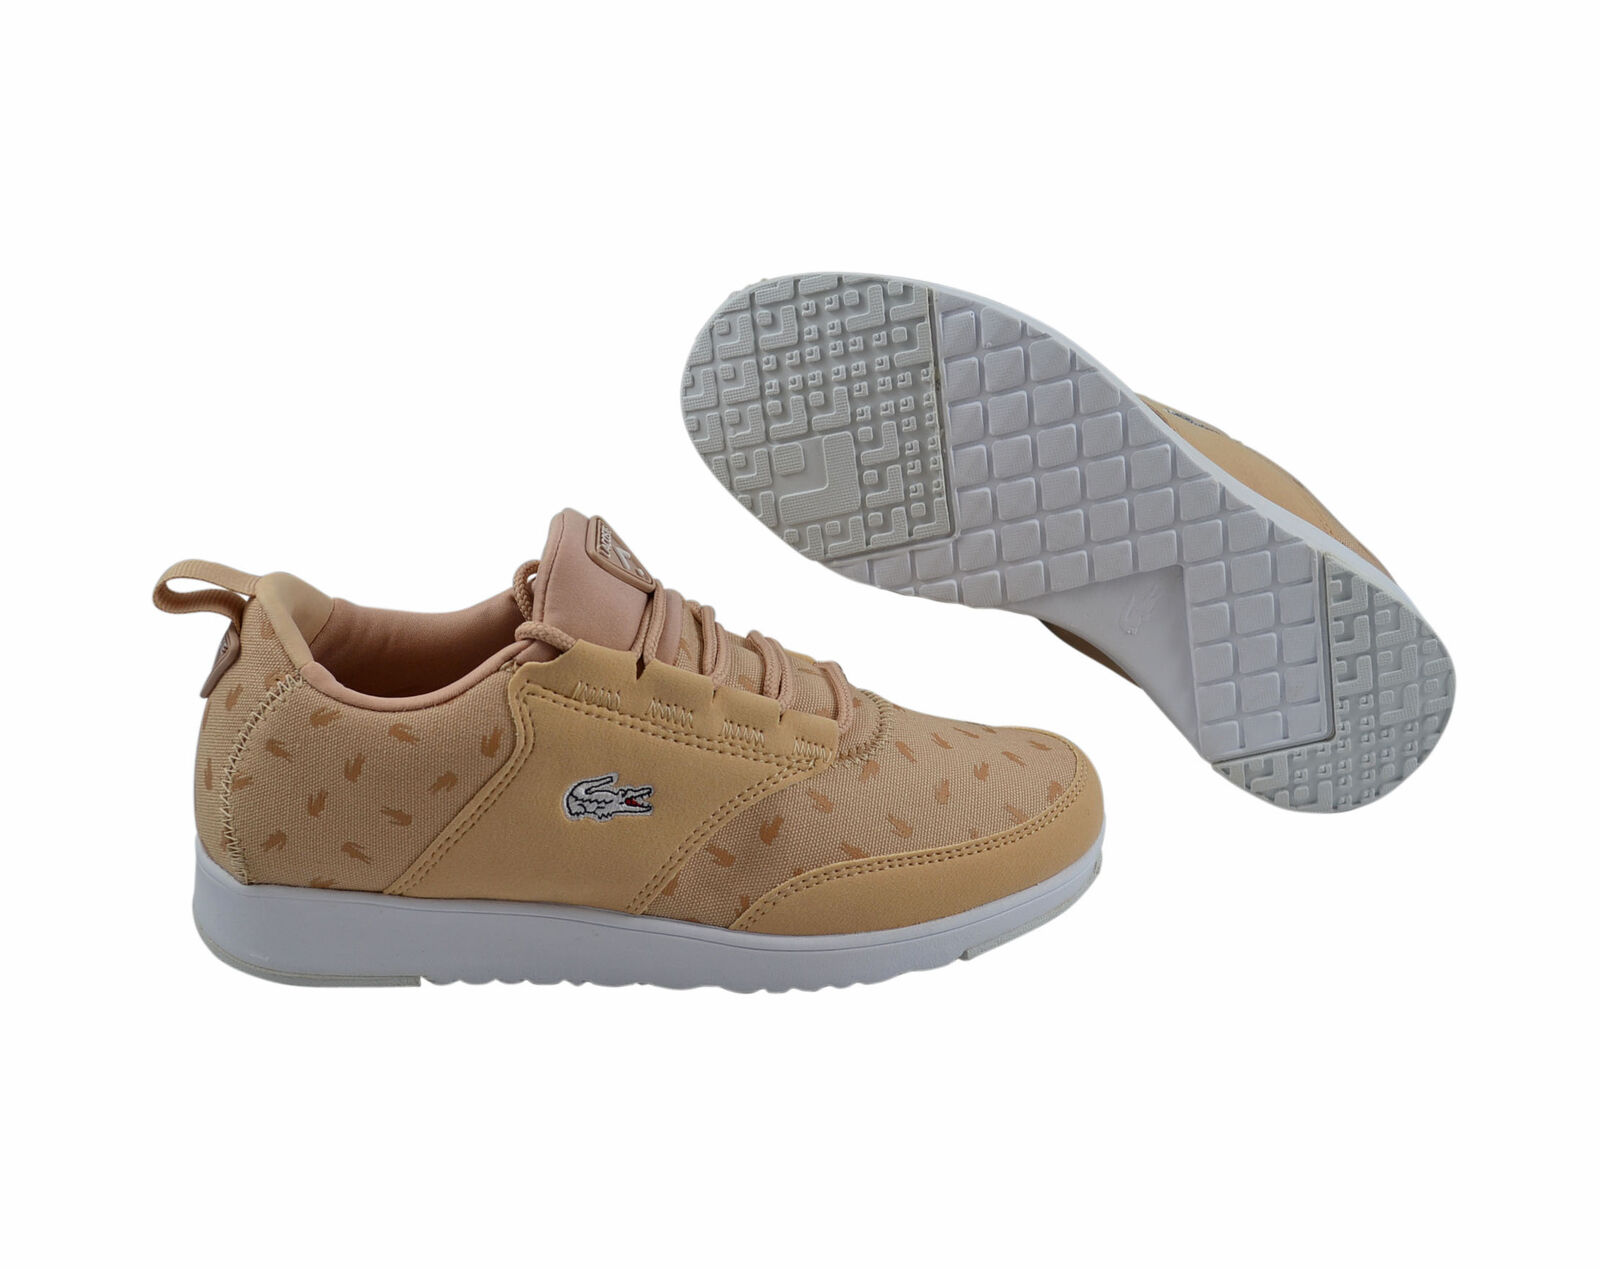 Lacoste L. ight 01 bb2 SPW natural zapatos light cortos-venta con